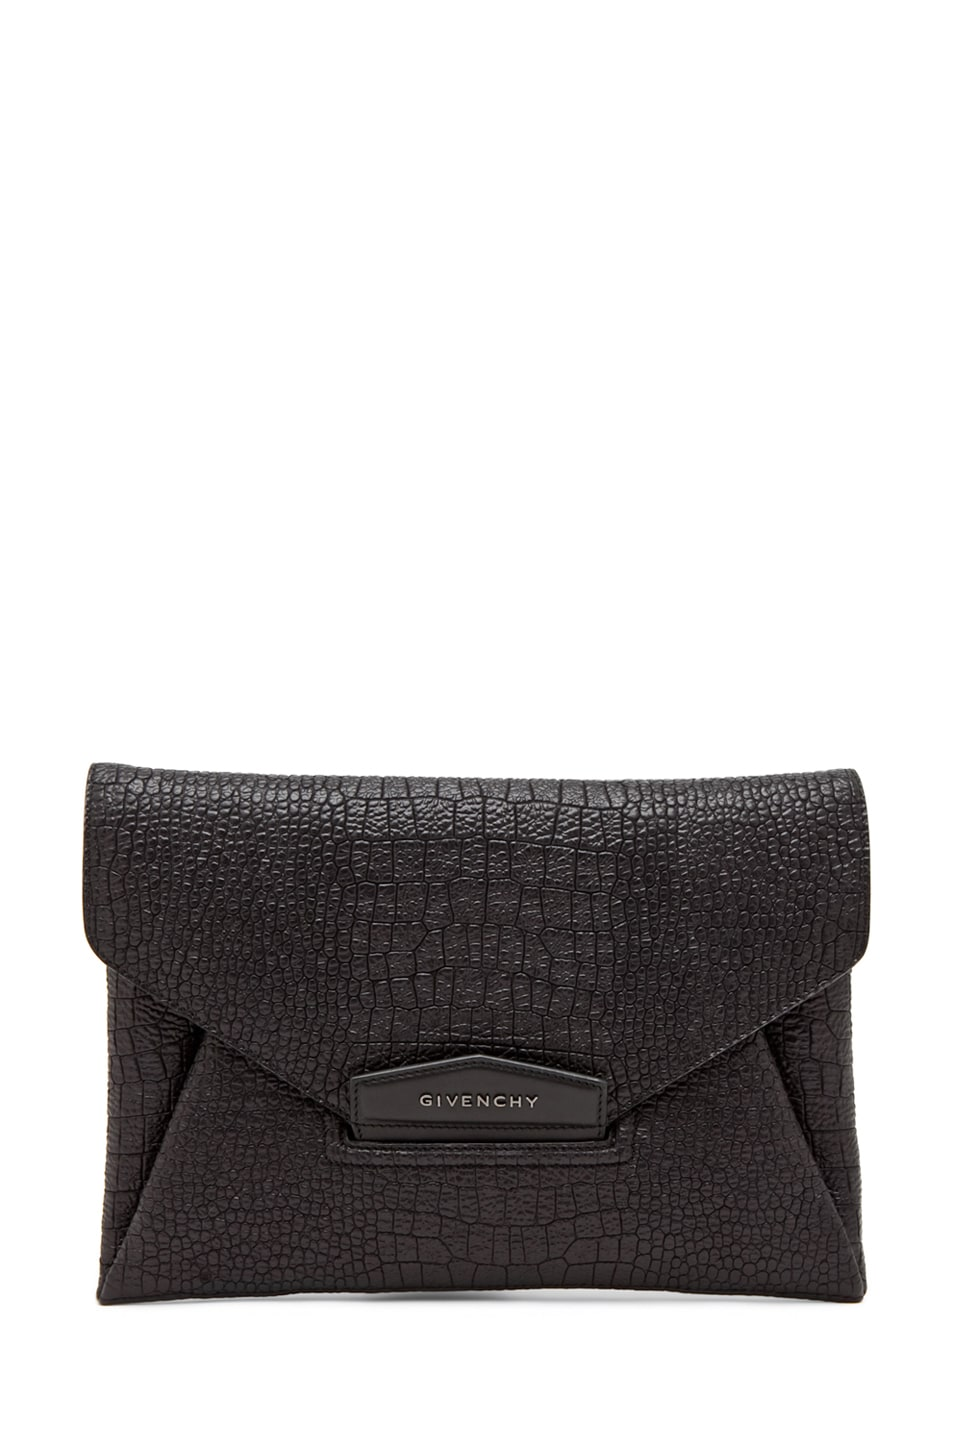 Image 1 of GIVENCHY Envelope Clutch in Black